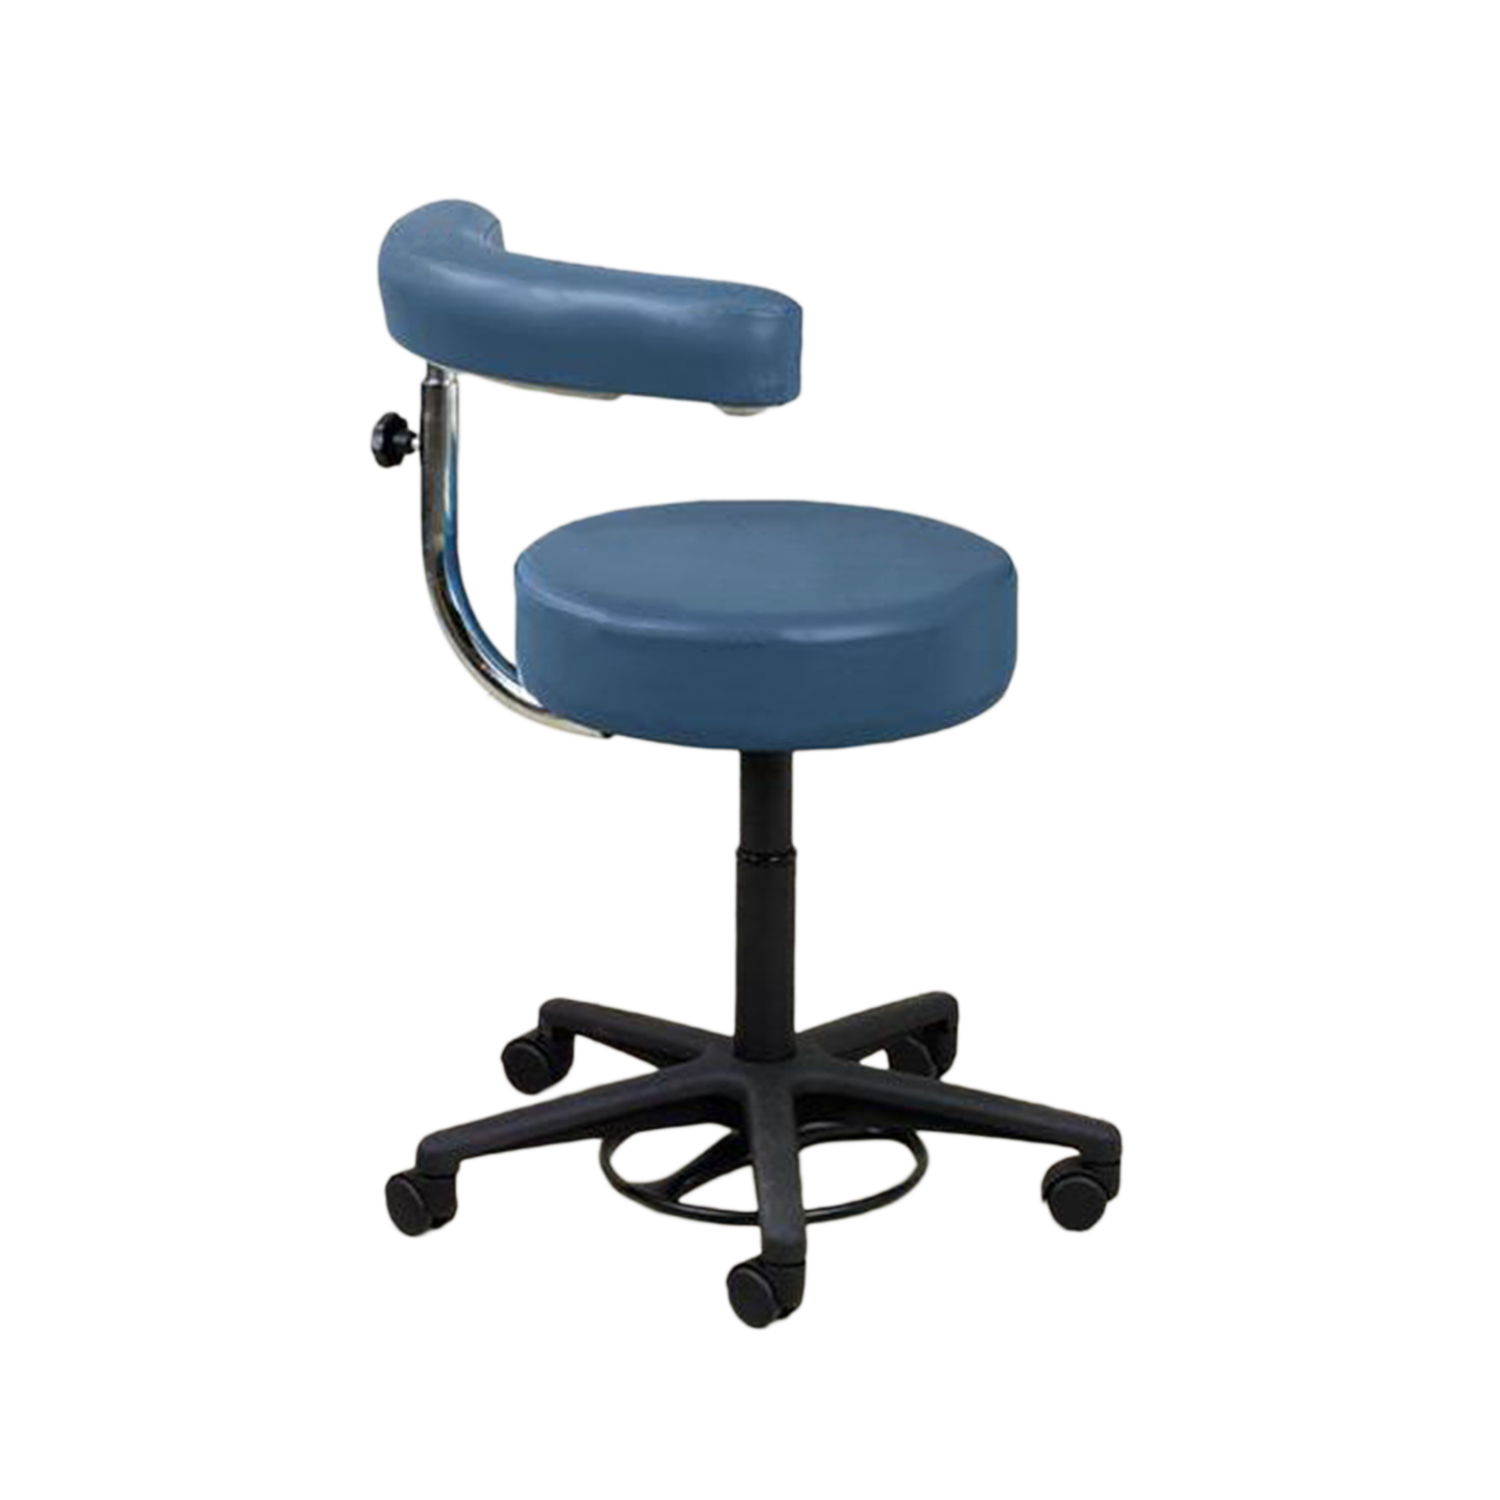 Hands-Free Stool with Armrest